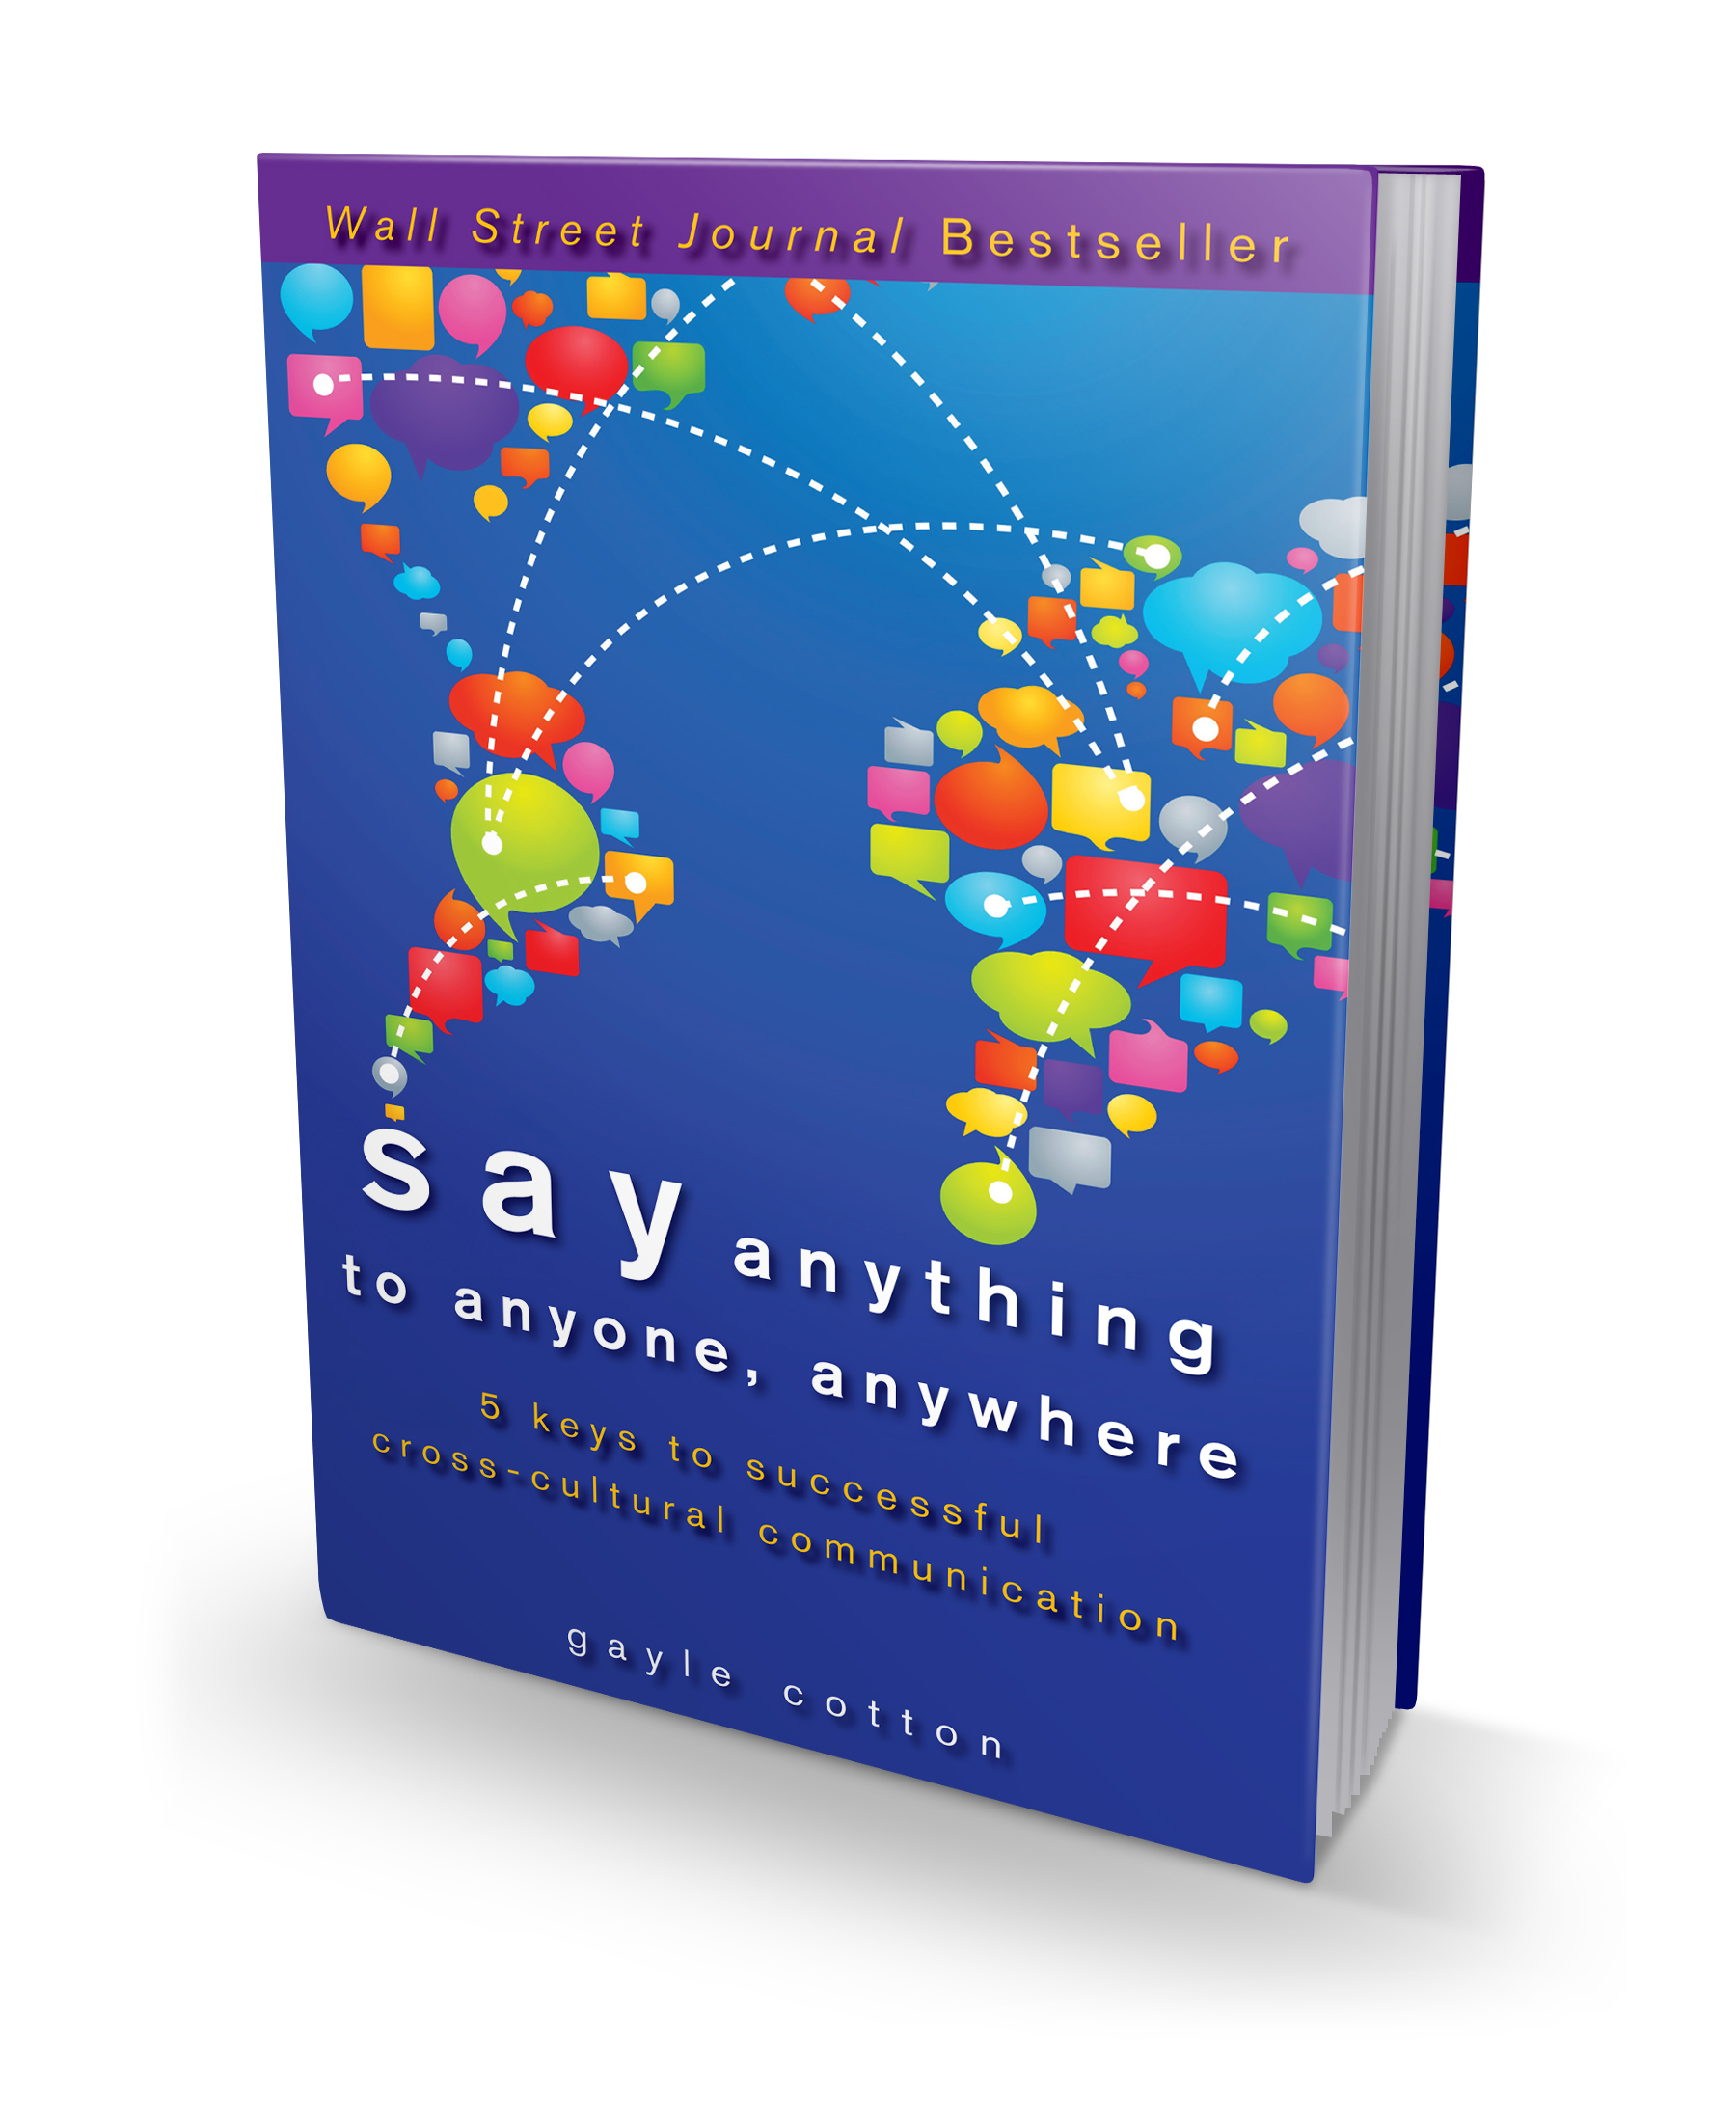 Bestselling Book: SAY Anything to Anyone...